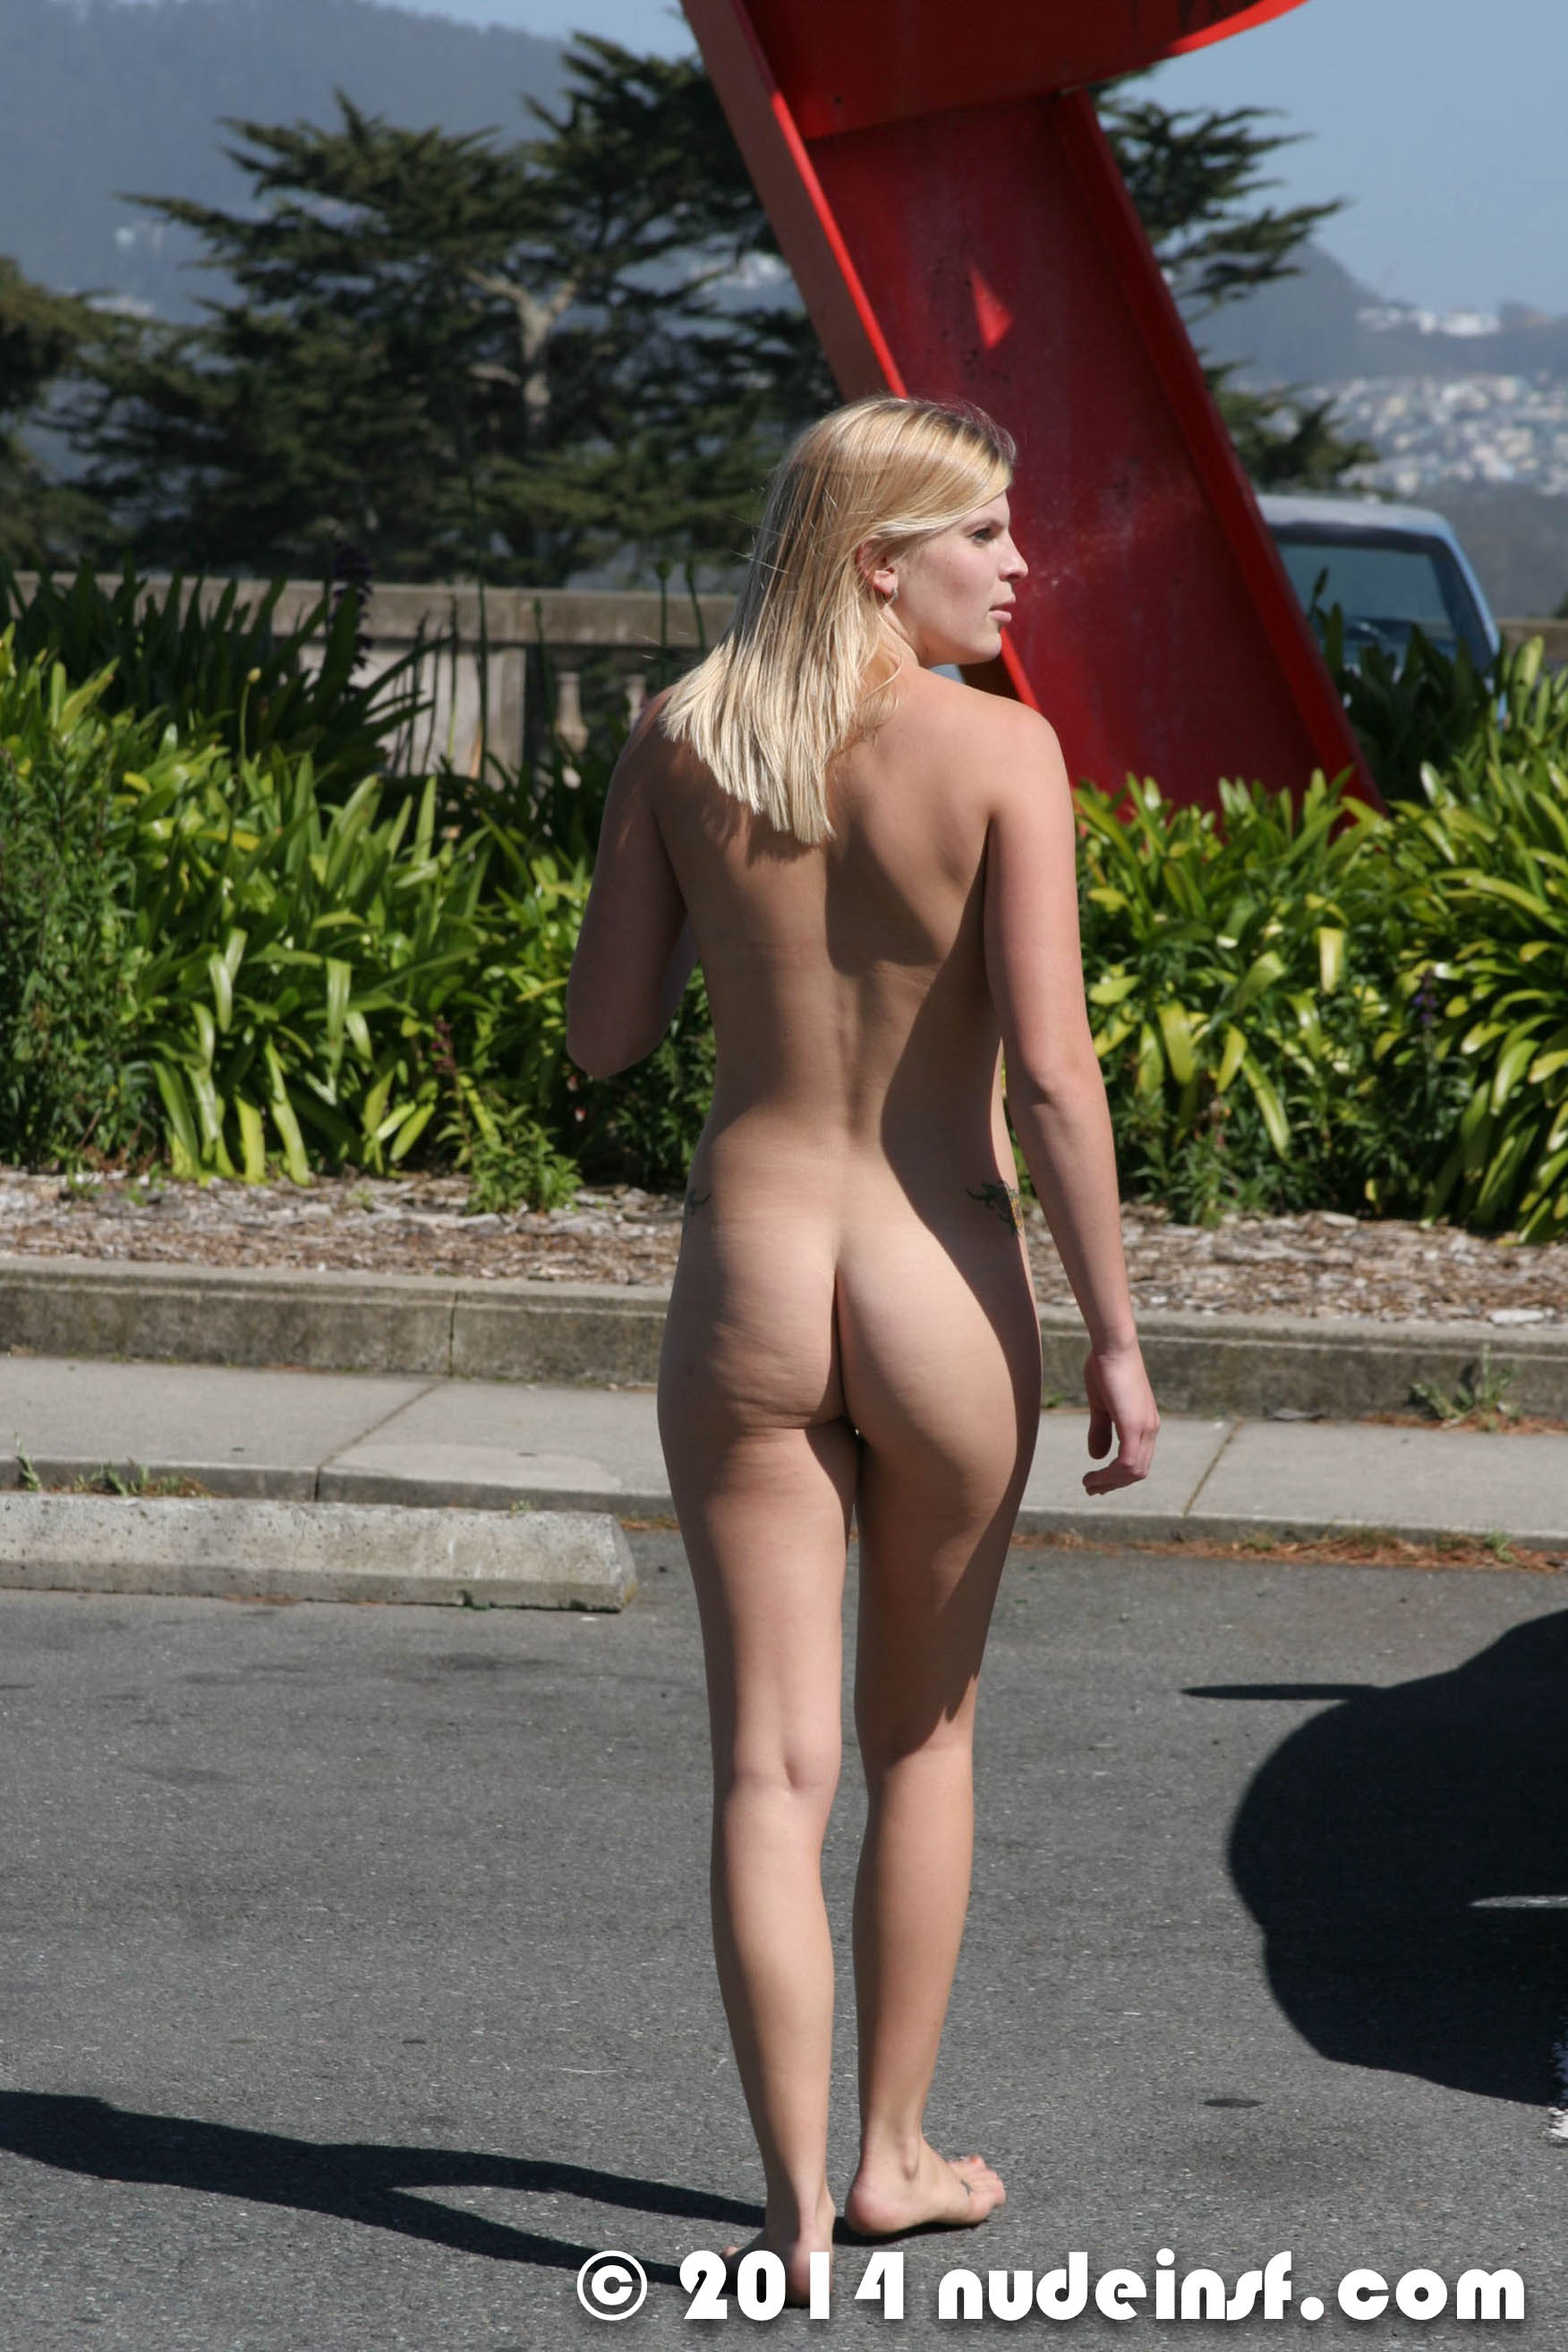 Beautiful women nude in public